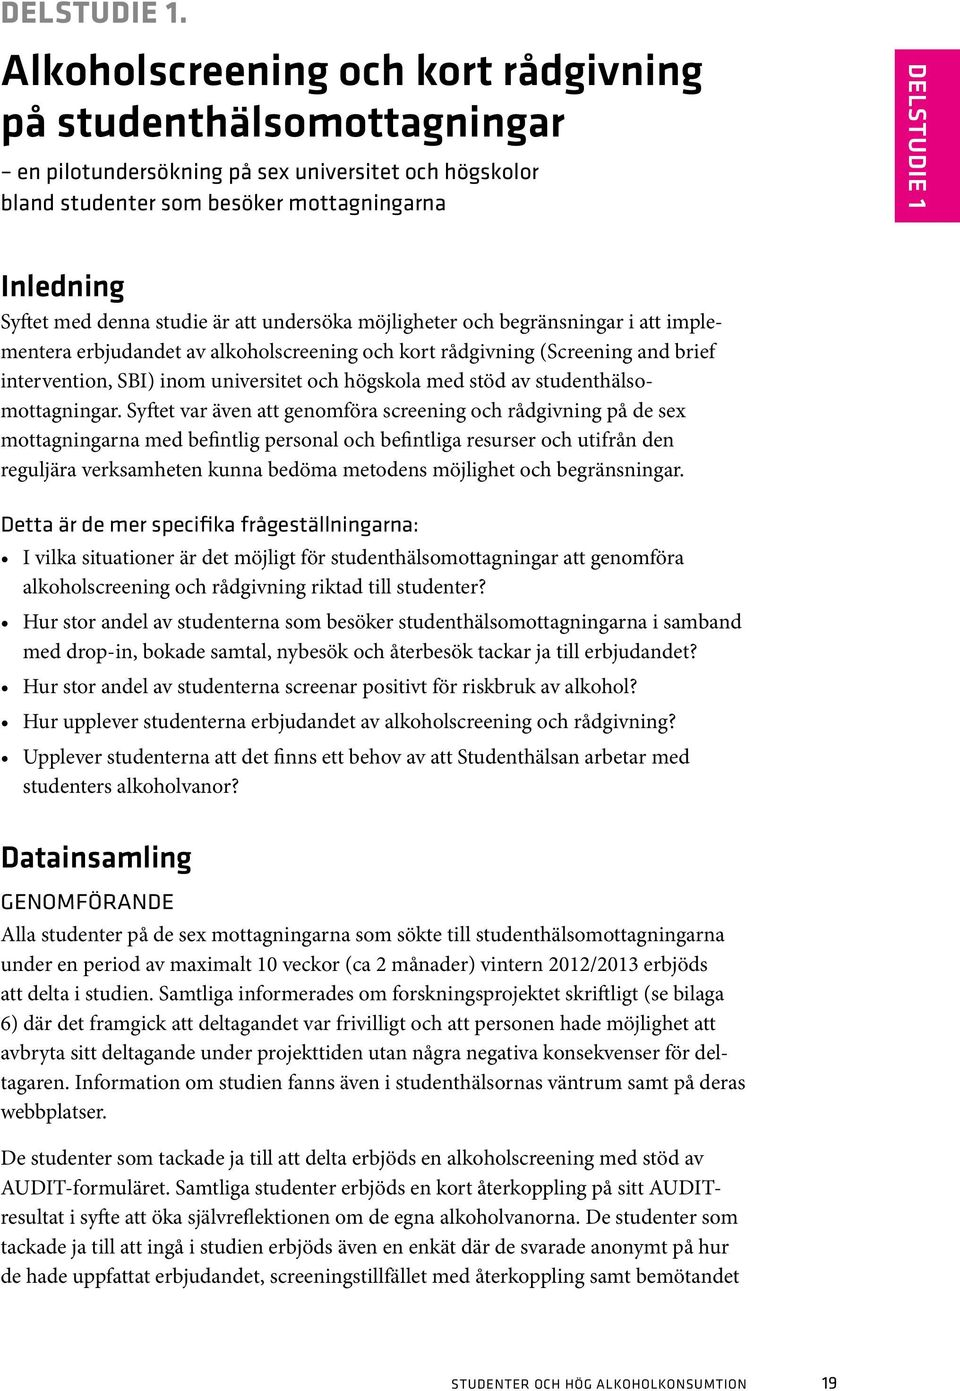 denna studie är att undersöka möjligheter och begränsningar i att implementera erbjudandet av alkoholscreening och kort rådgivning (Screening and brief intervention, SBI) inom universitet och